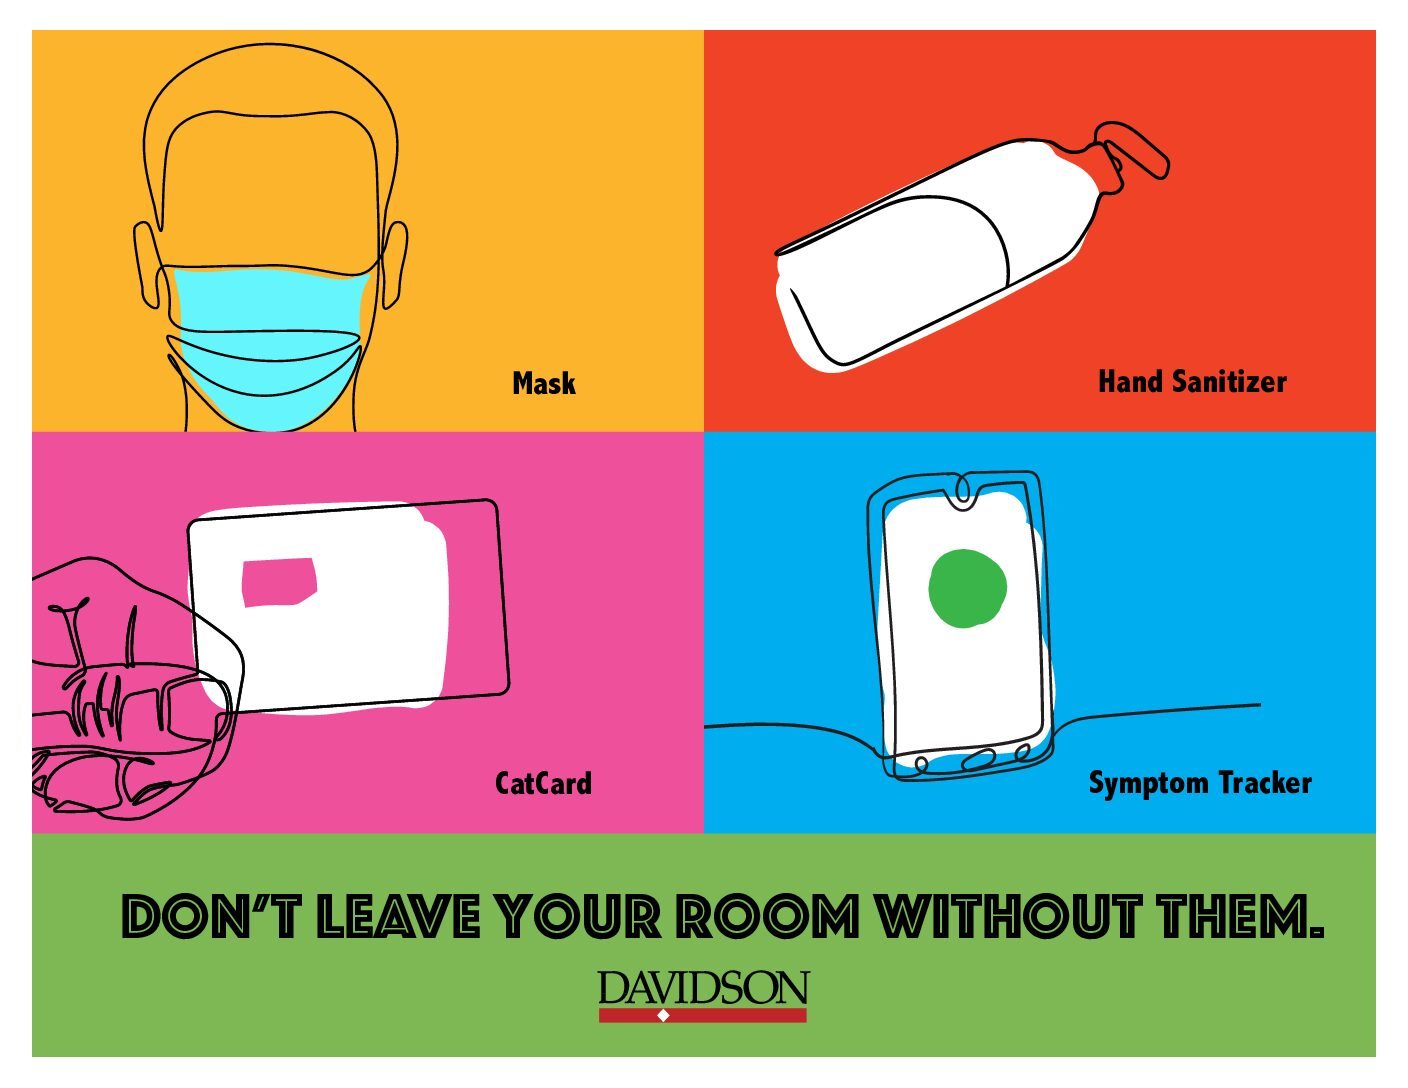 """""""Don't leave your room without them: catcard, sanitizer, mask, symptom tracker"""" with sketches of these items"""